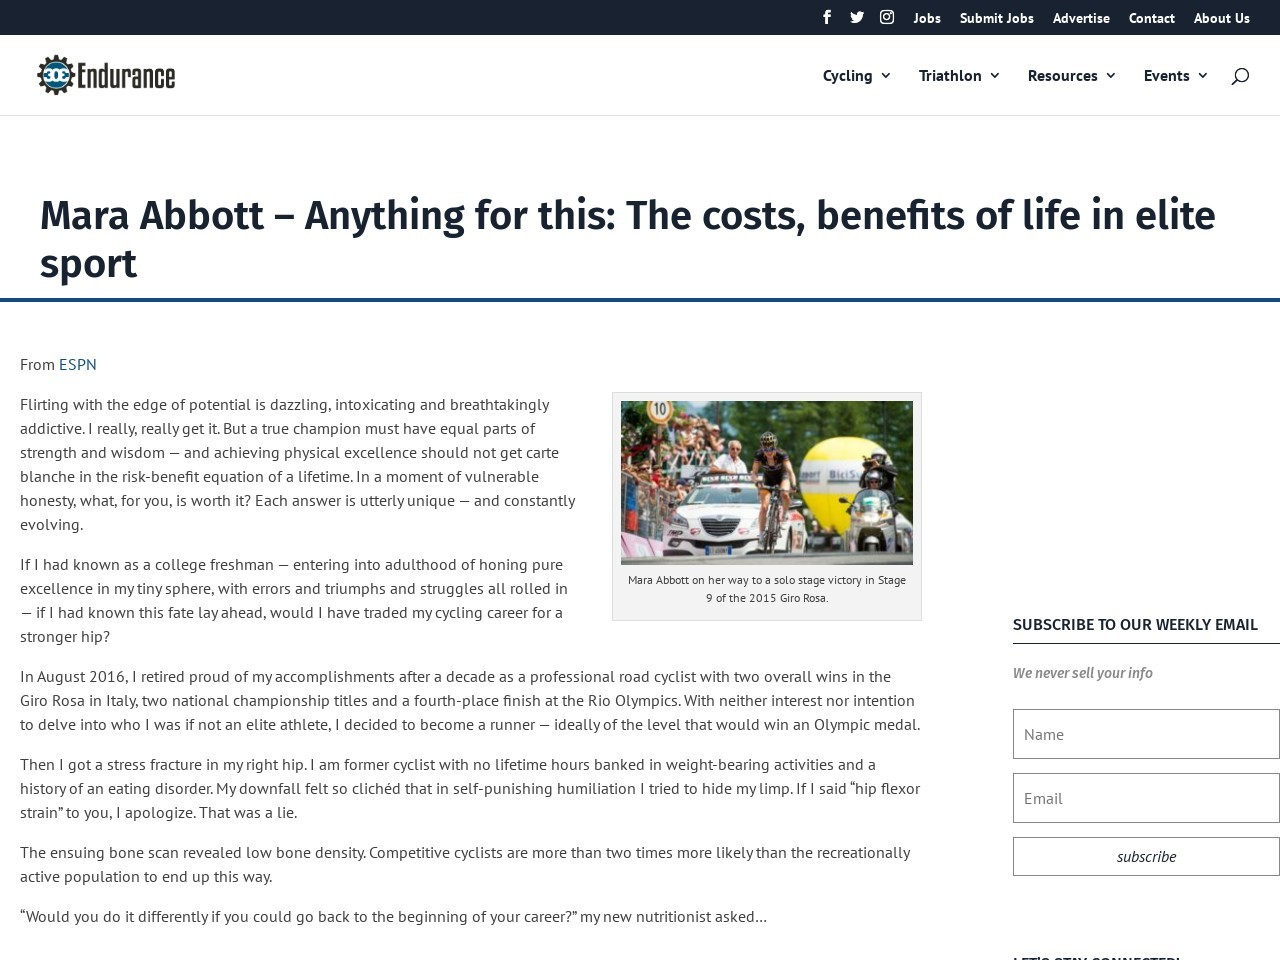 Mara Abbott – Anything for this: The costs, benefits of life in elite sport